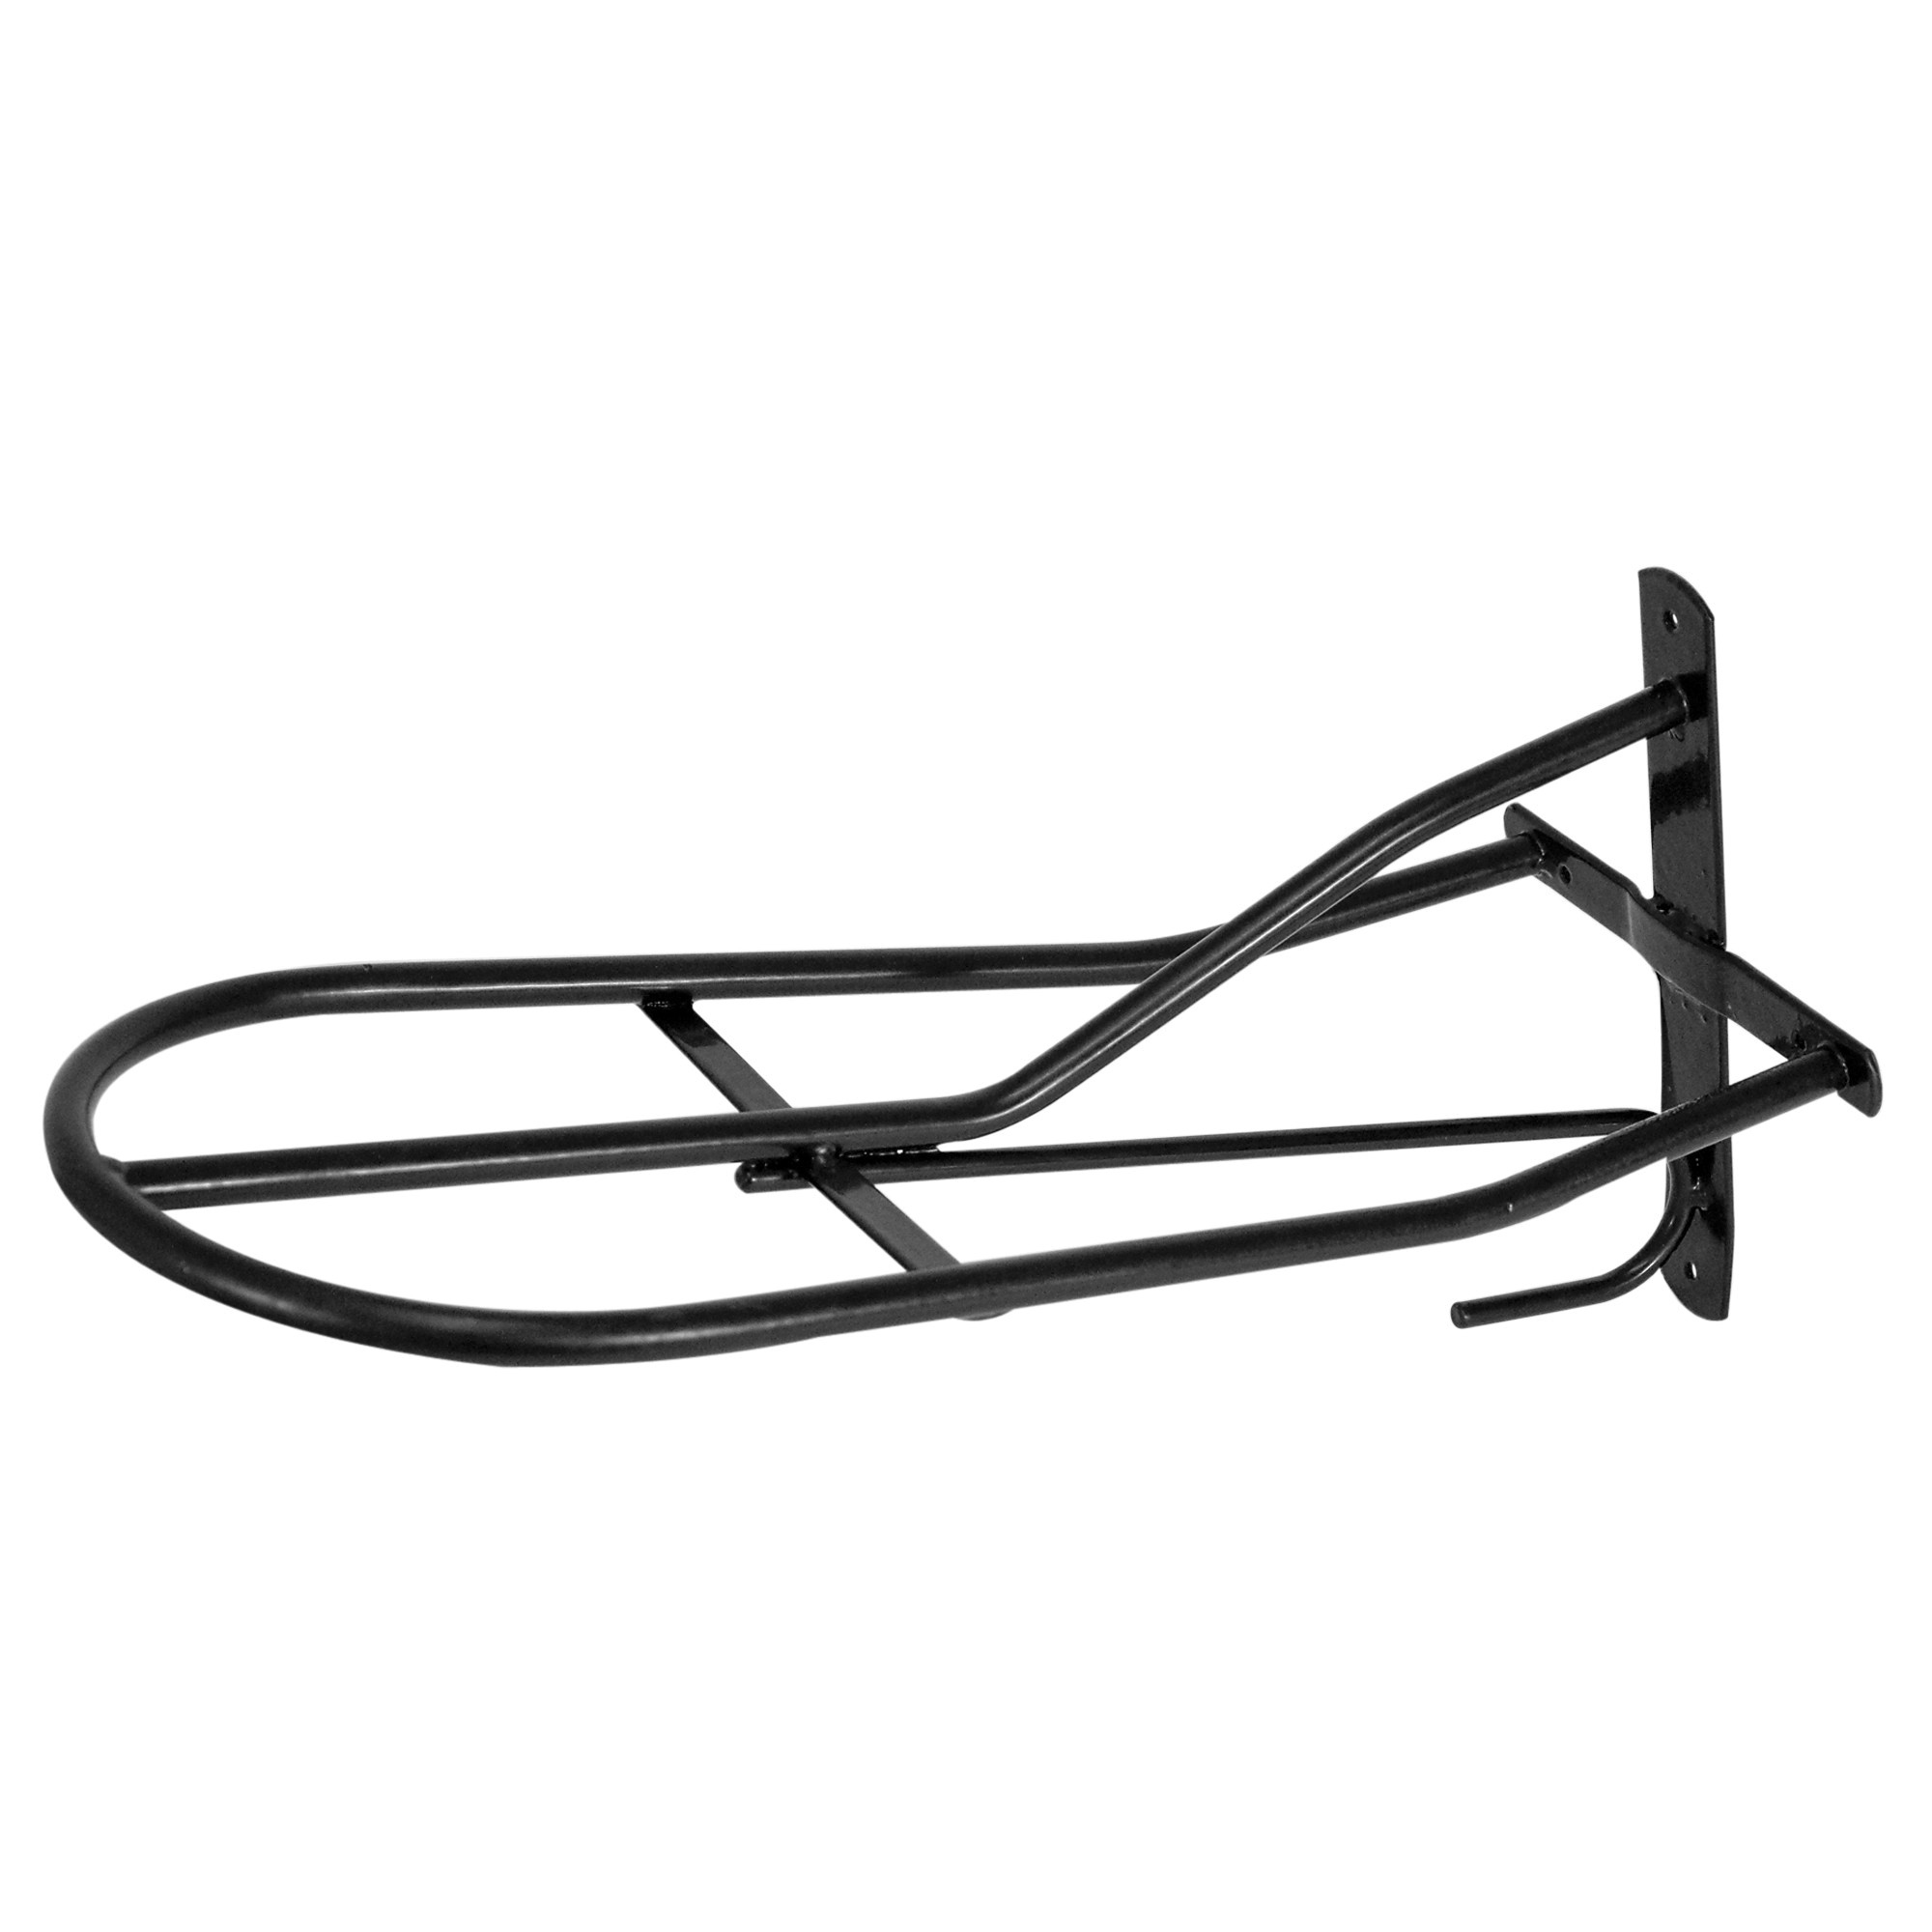 Wall Saddle Rack for English Saddle